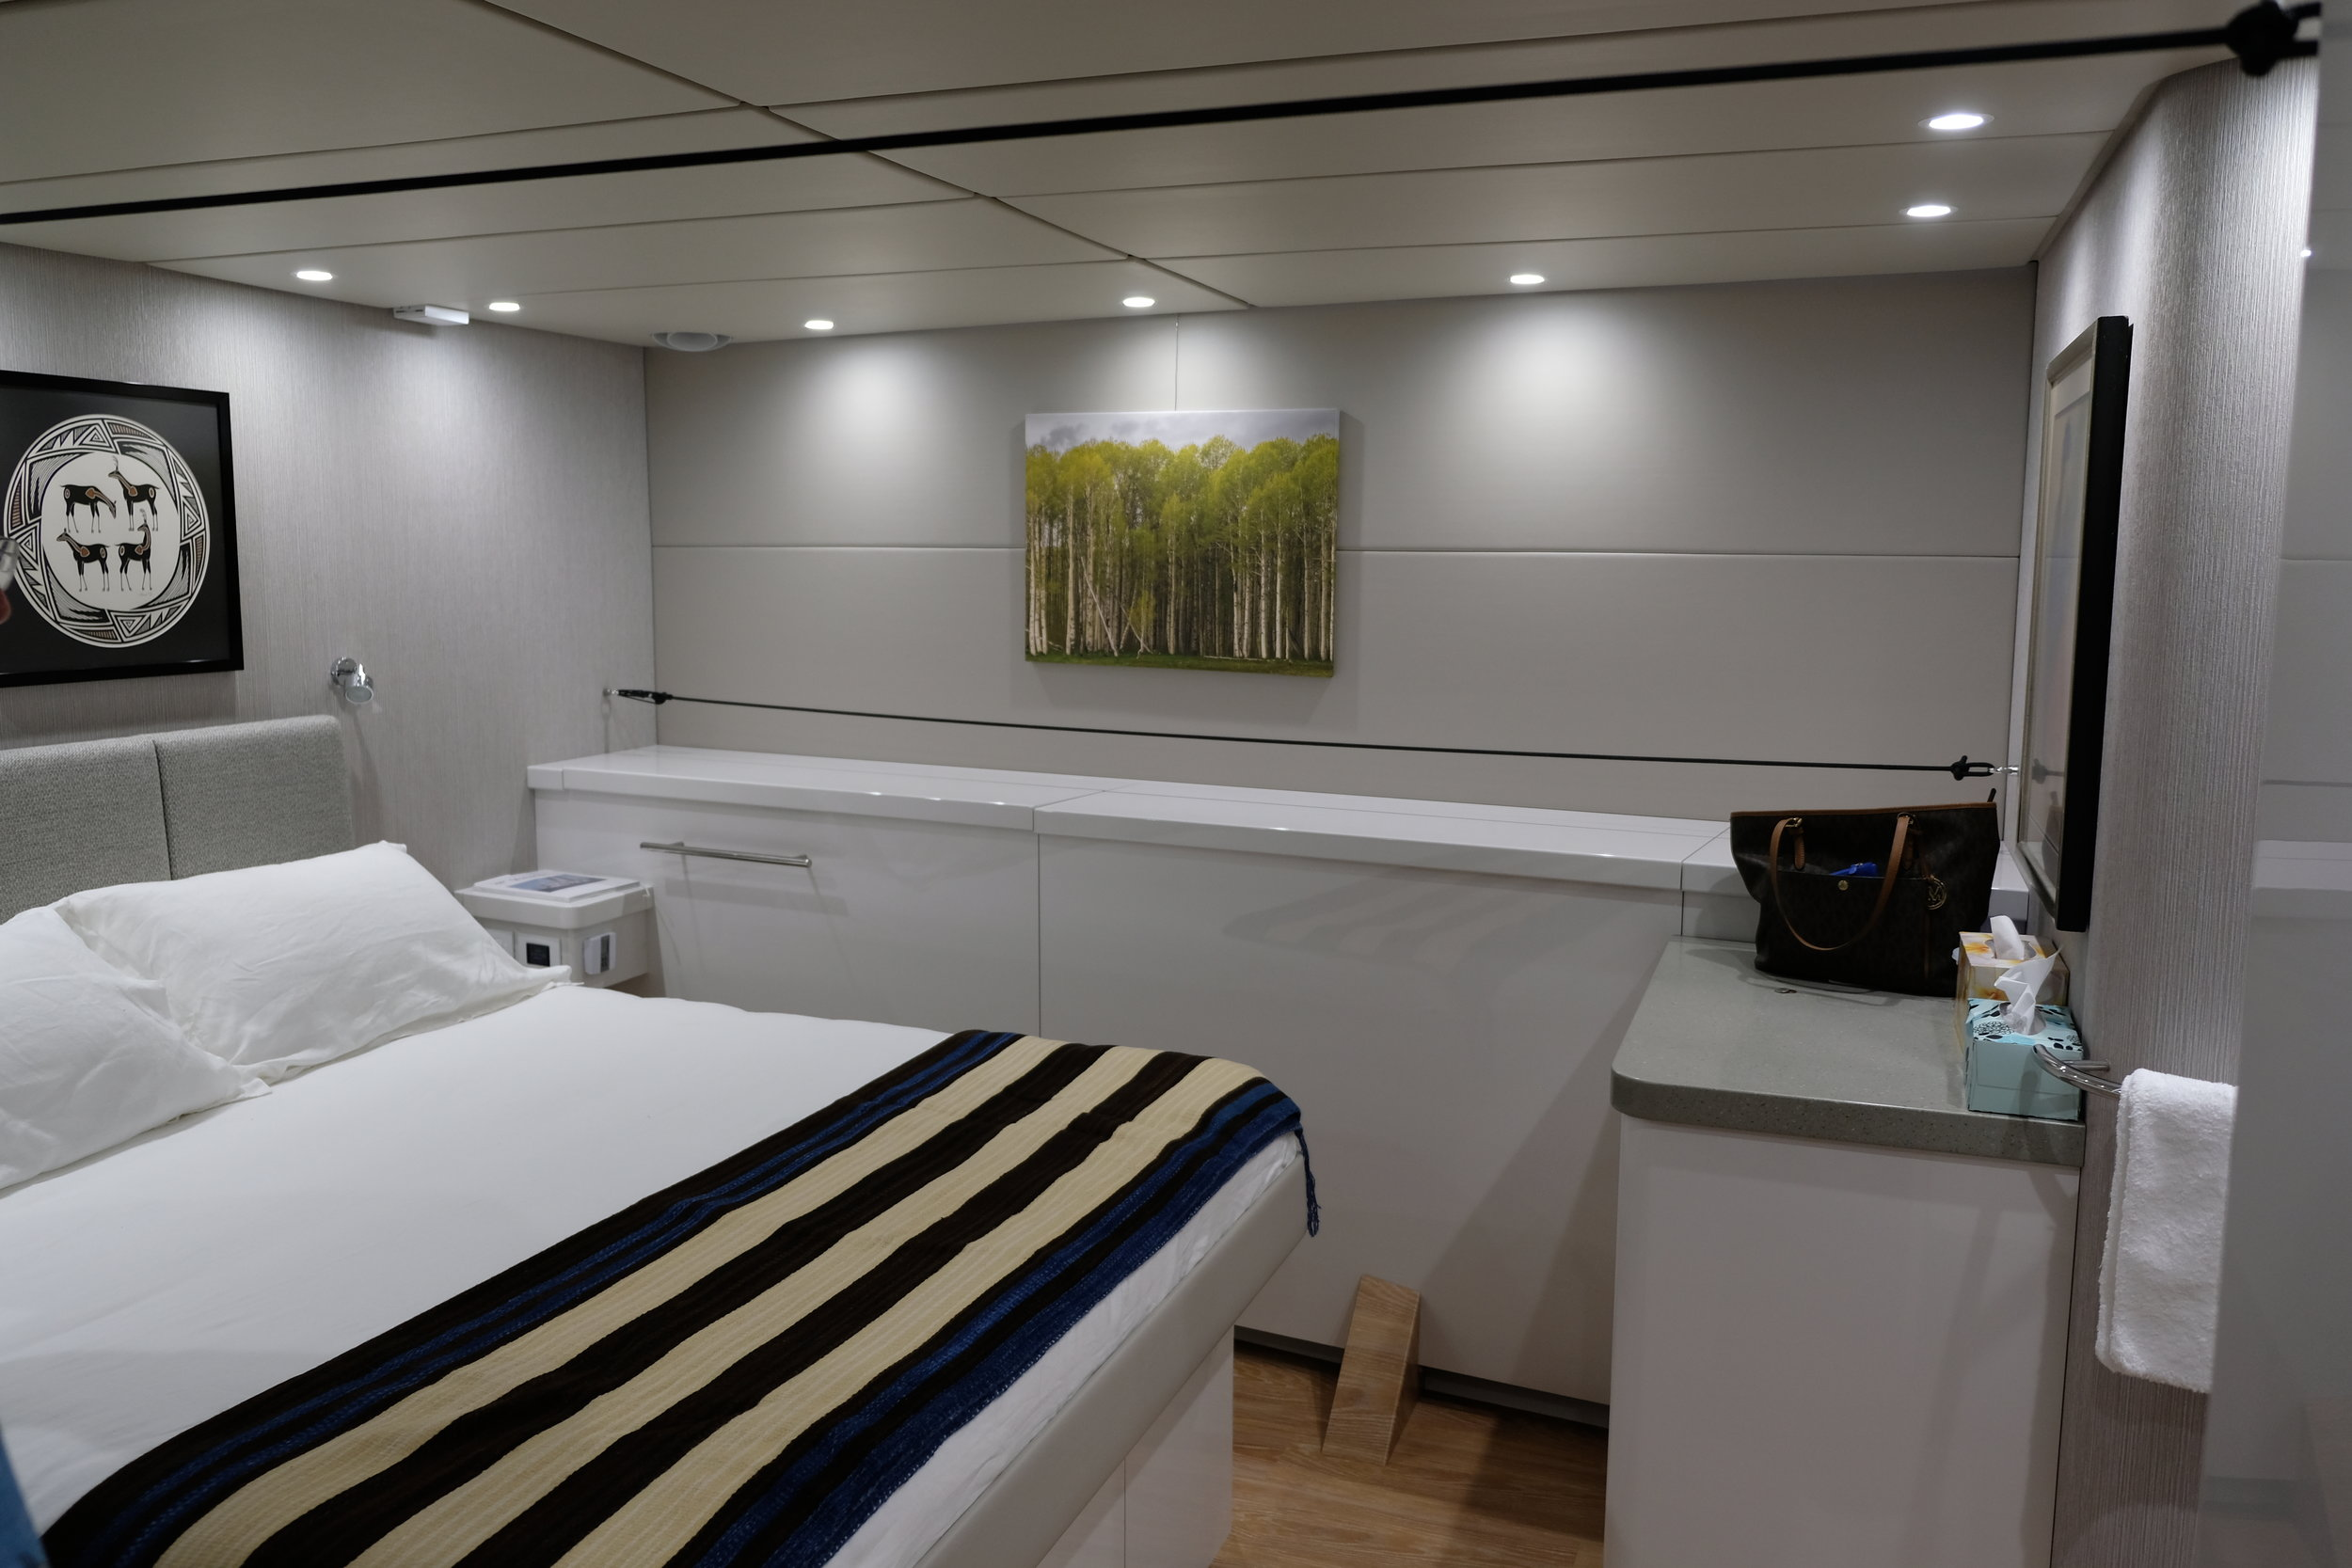 The master stateroom is roomy with enormous storage within easy reach. The ensuite head and shower are forward of this cabin, and are nothing like the cramped quarters one finds in so many boats.